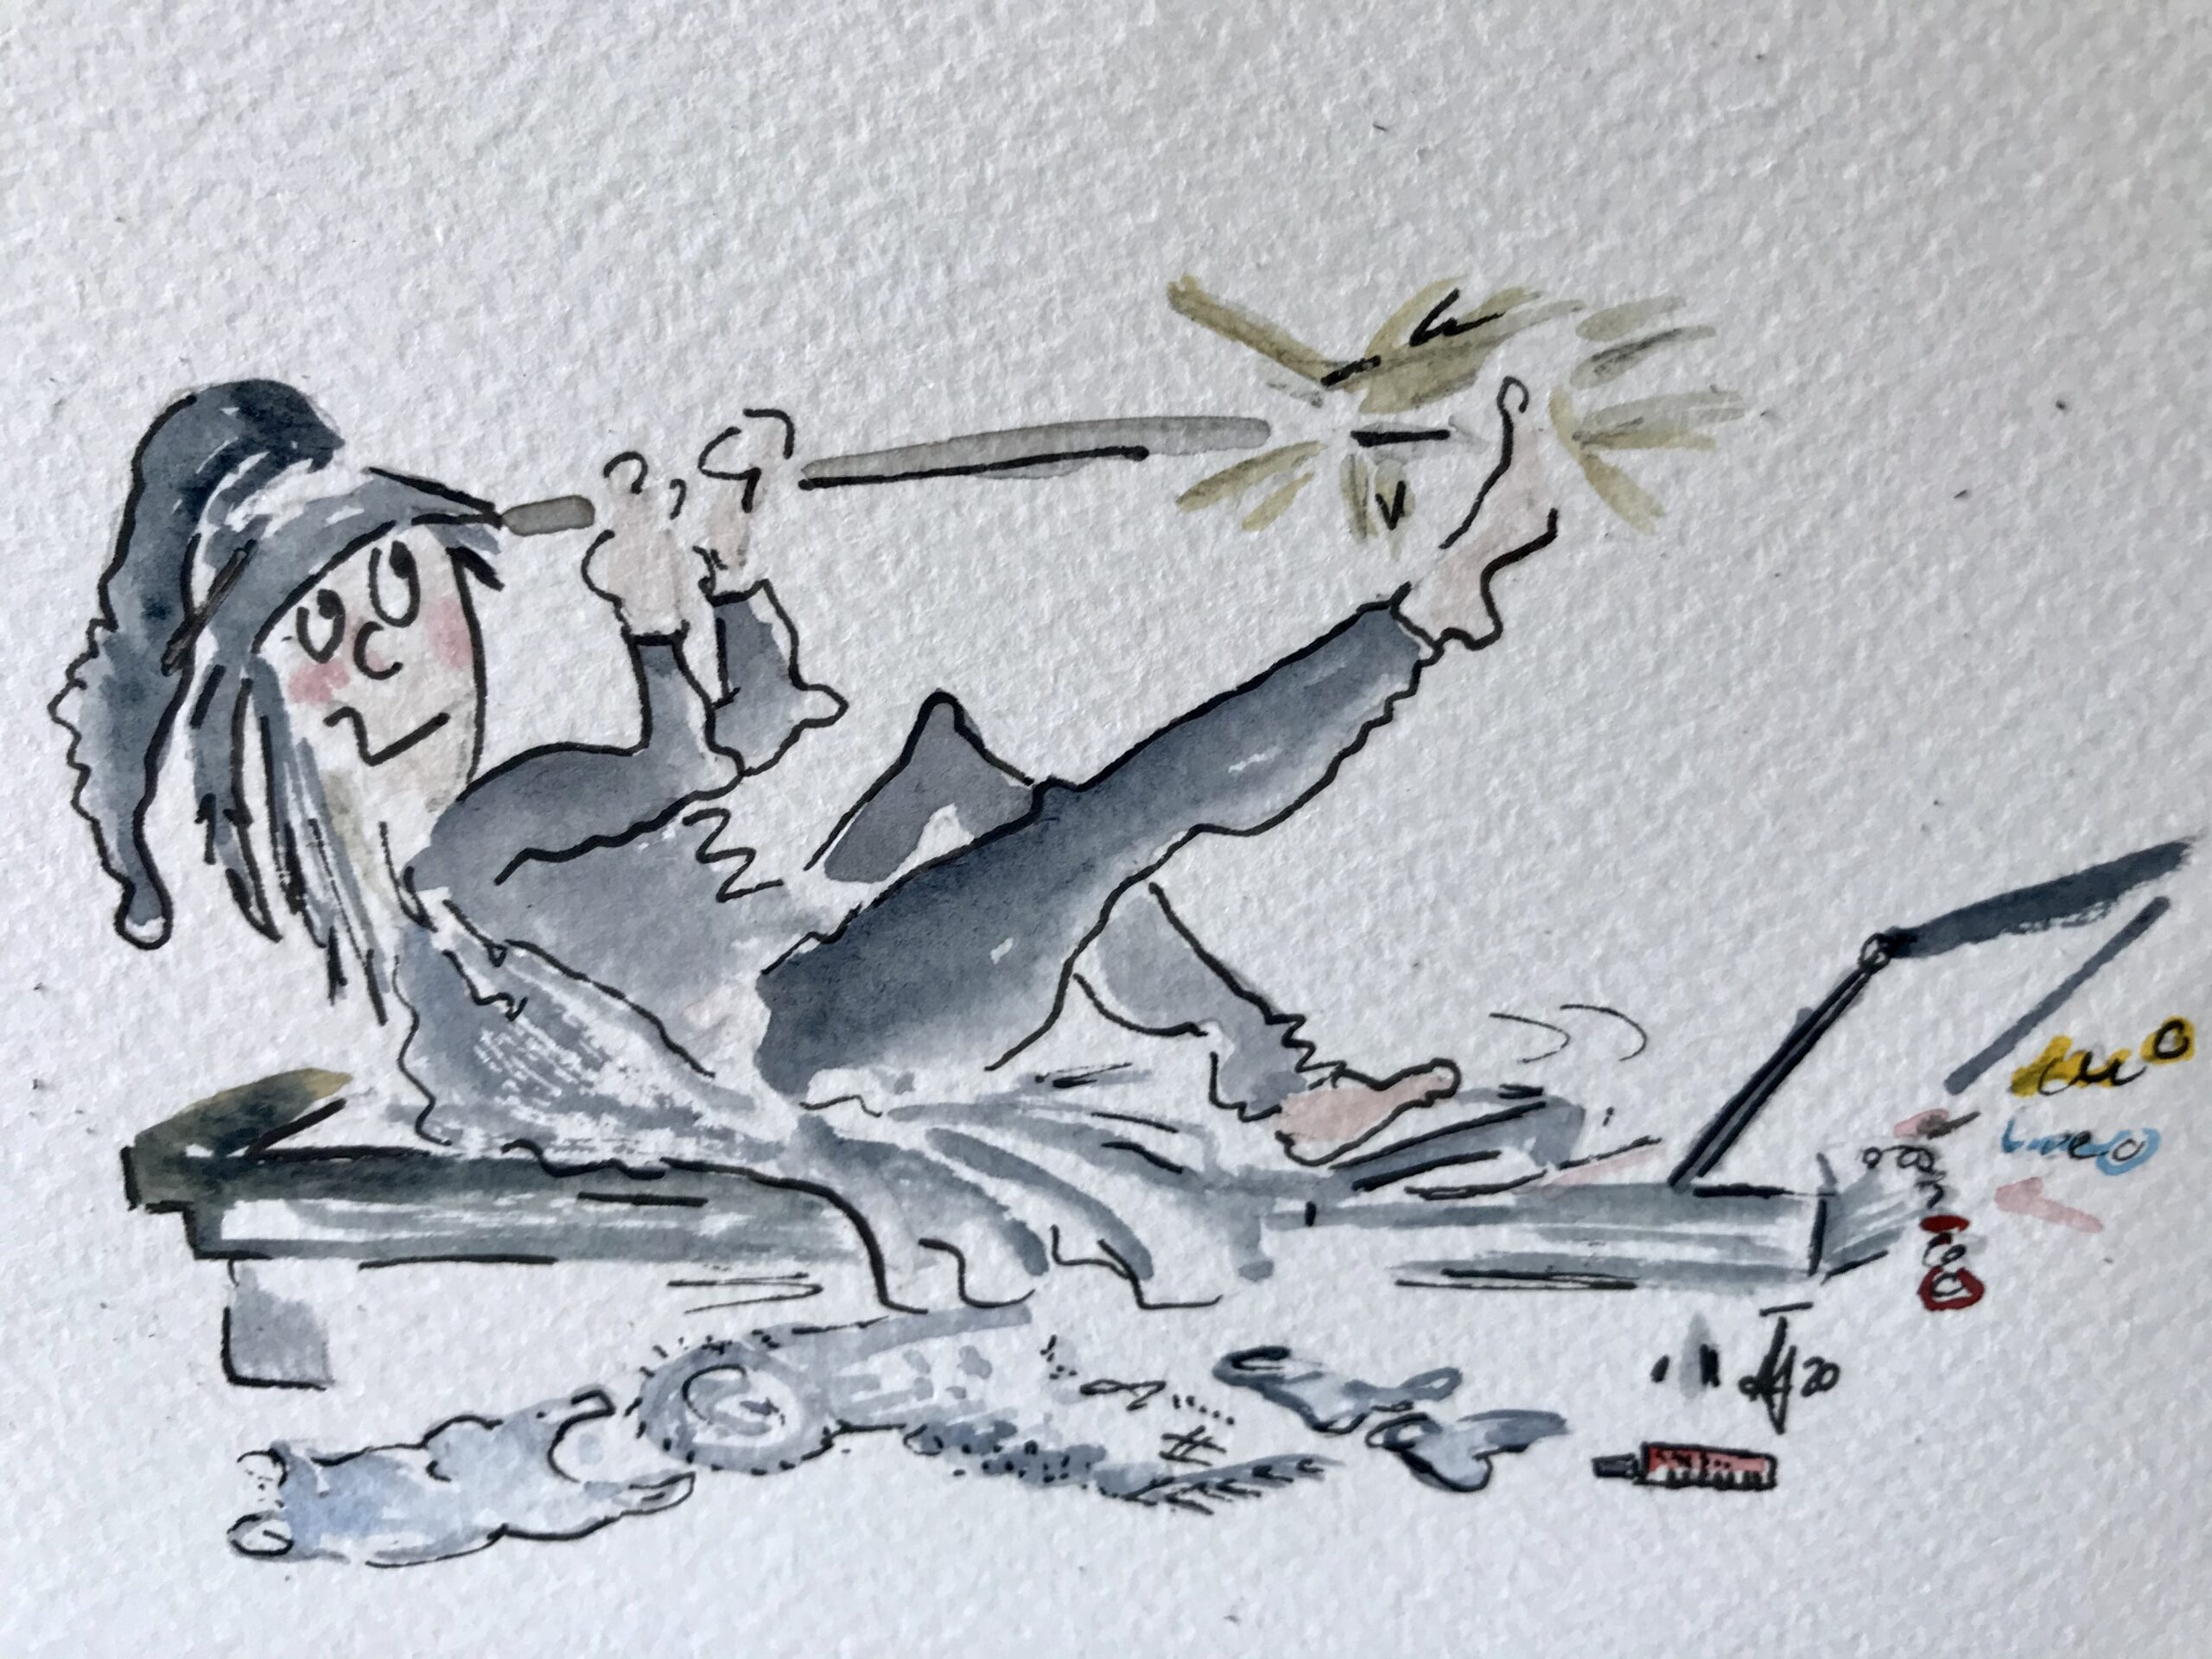 Witch repairs cartoon drawing